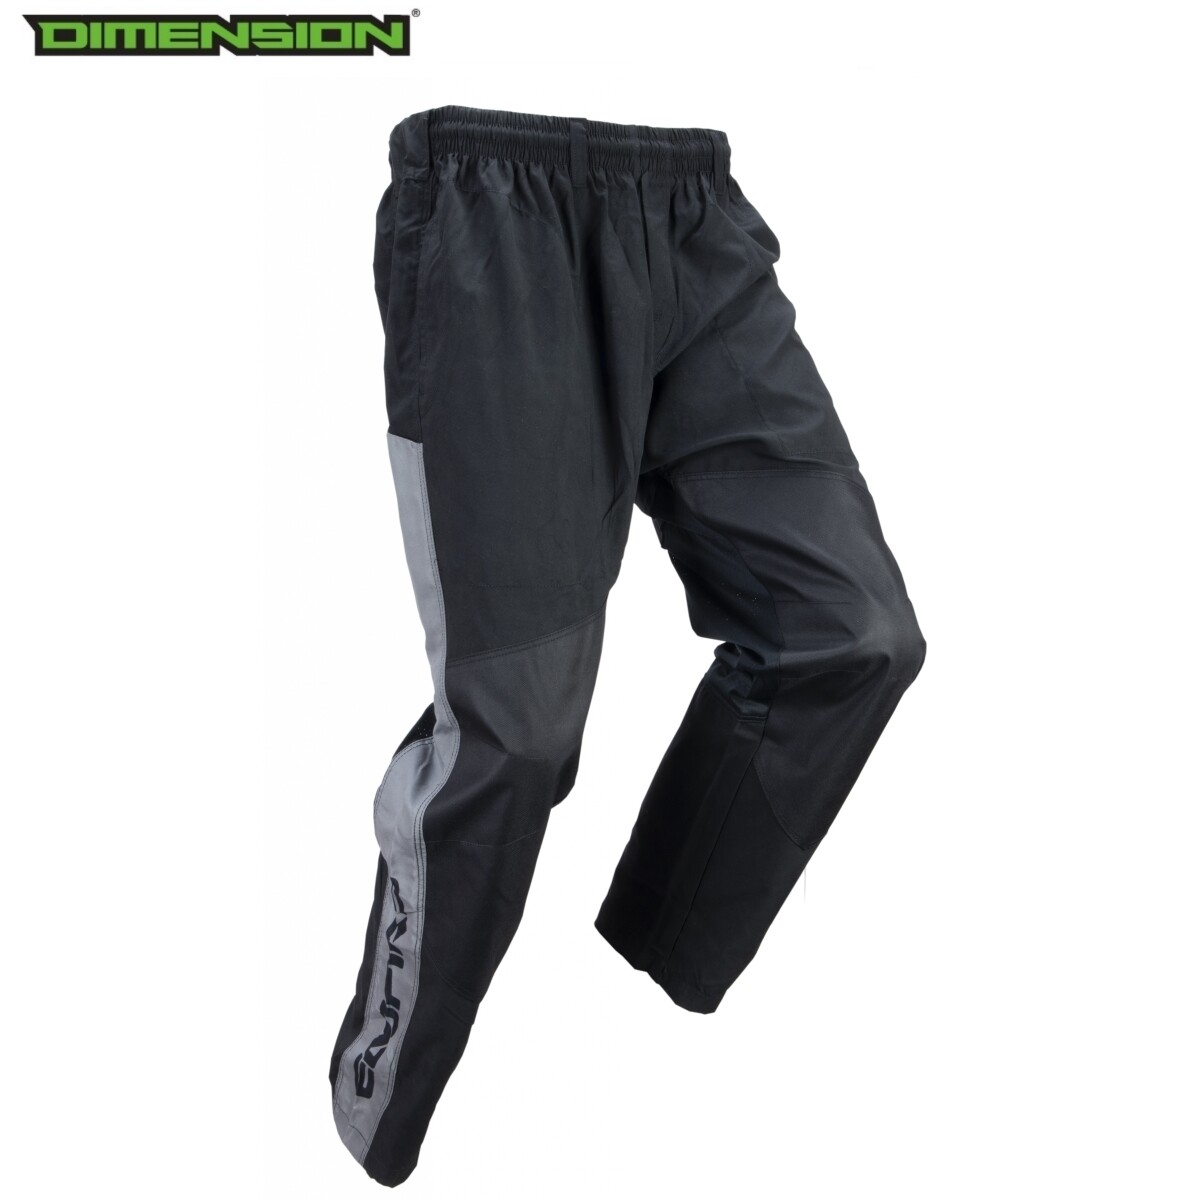 Empire Grind Pants - Black/Grey - Large